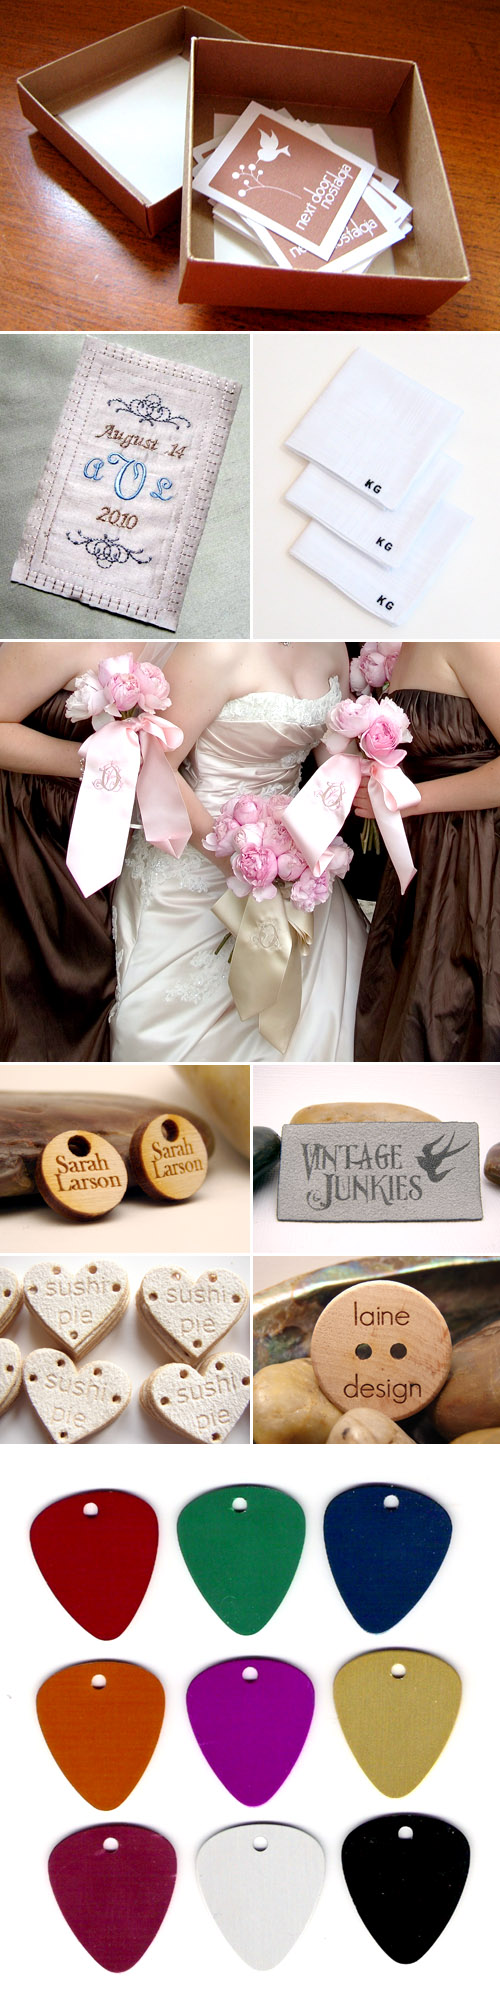 custom printed personalized wedding dress and labels and wedding favor tags from etsy.com